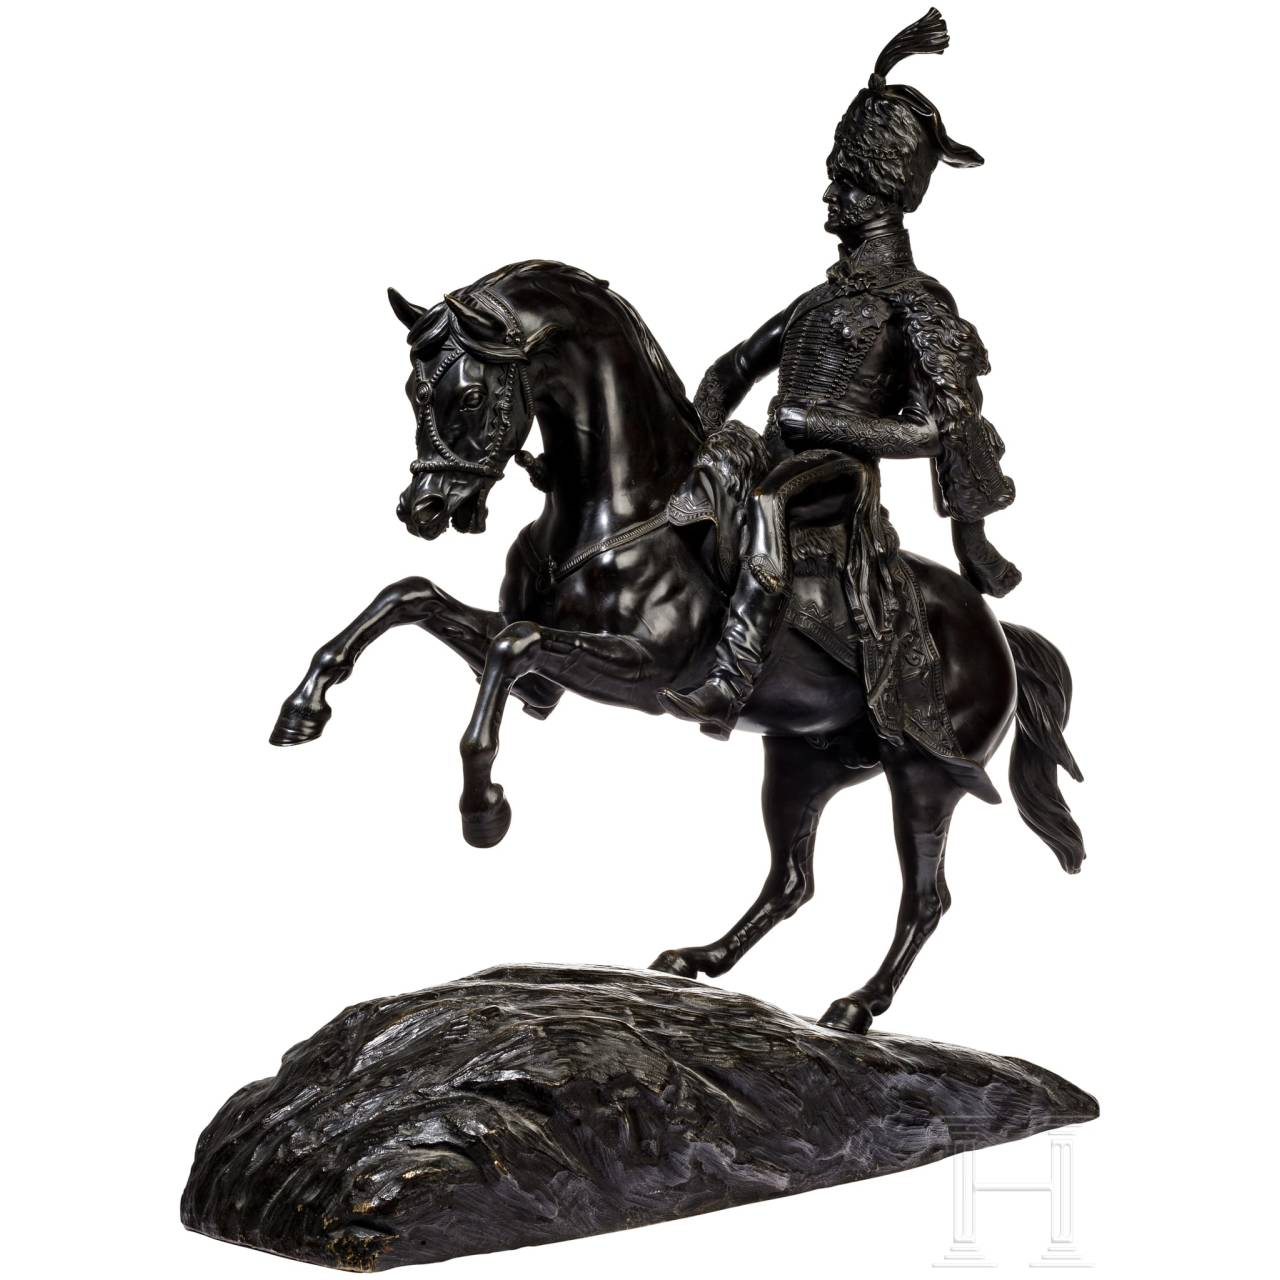 General Charles Vane Stewart, 3rd Marquis of Londonderry – a French equestrian bronze statue, 19th century